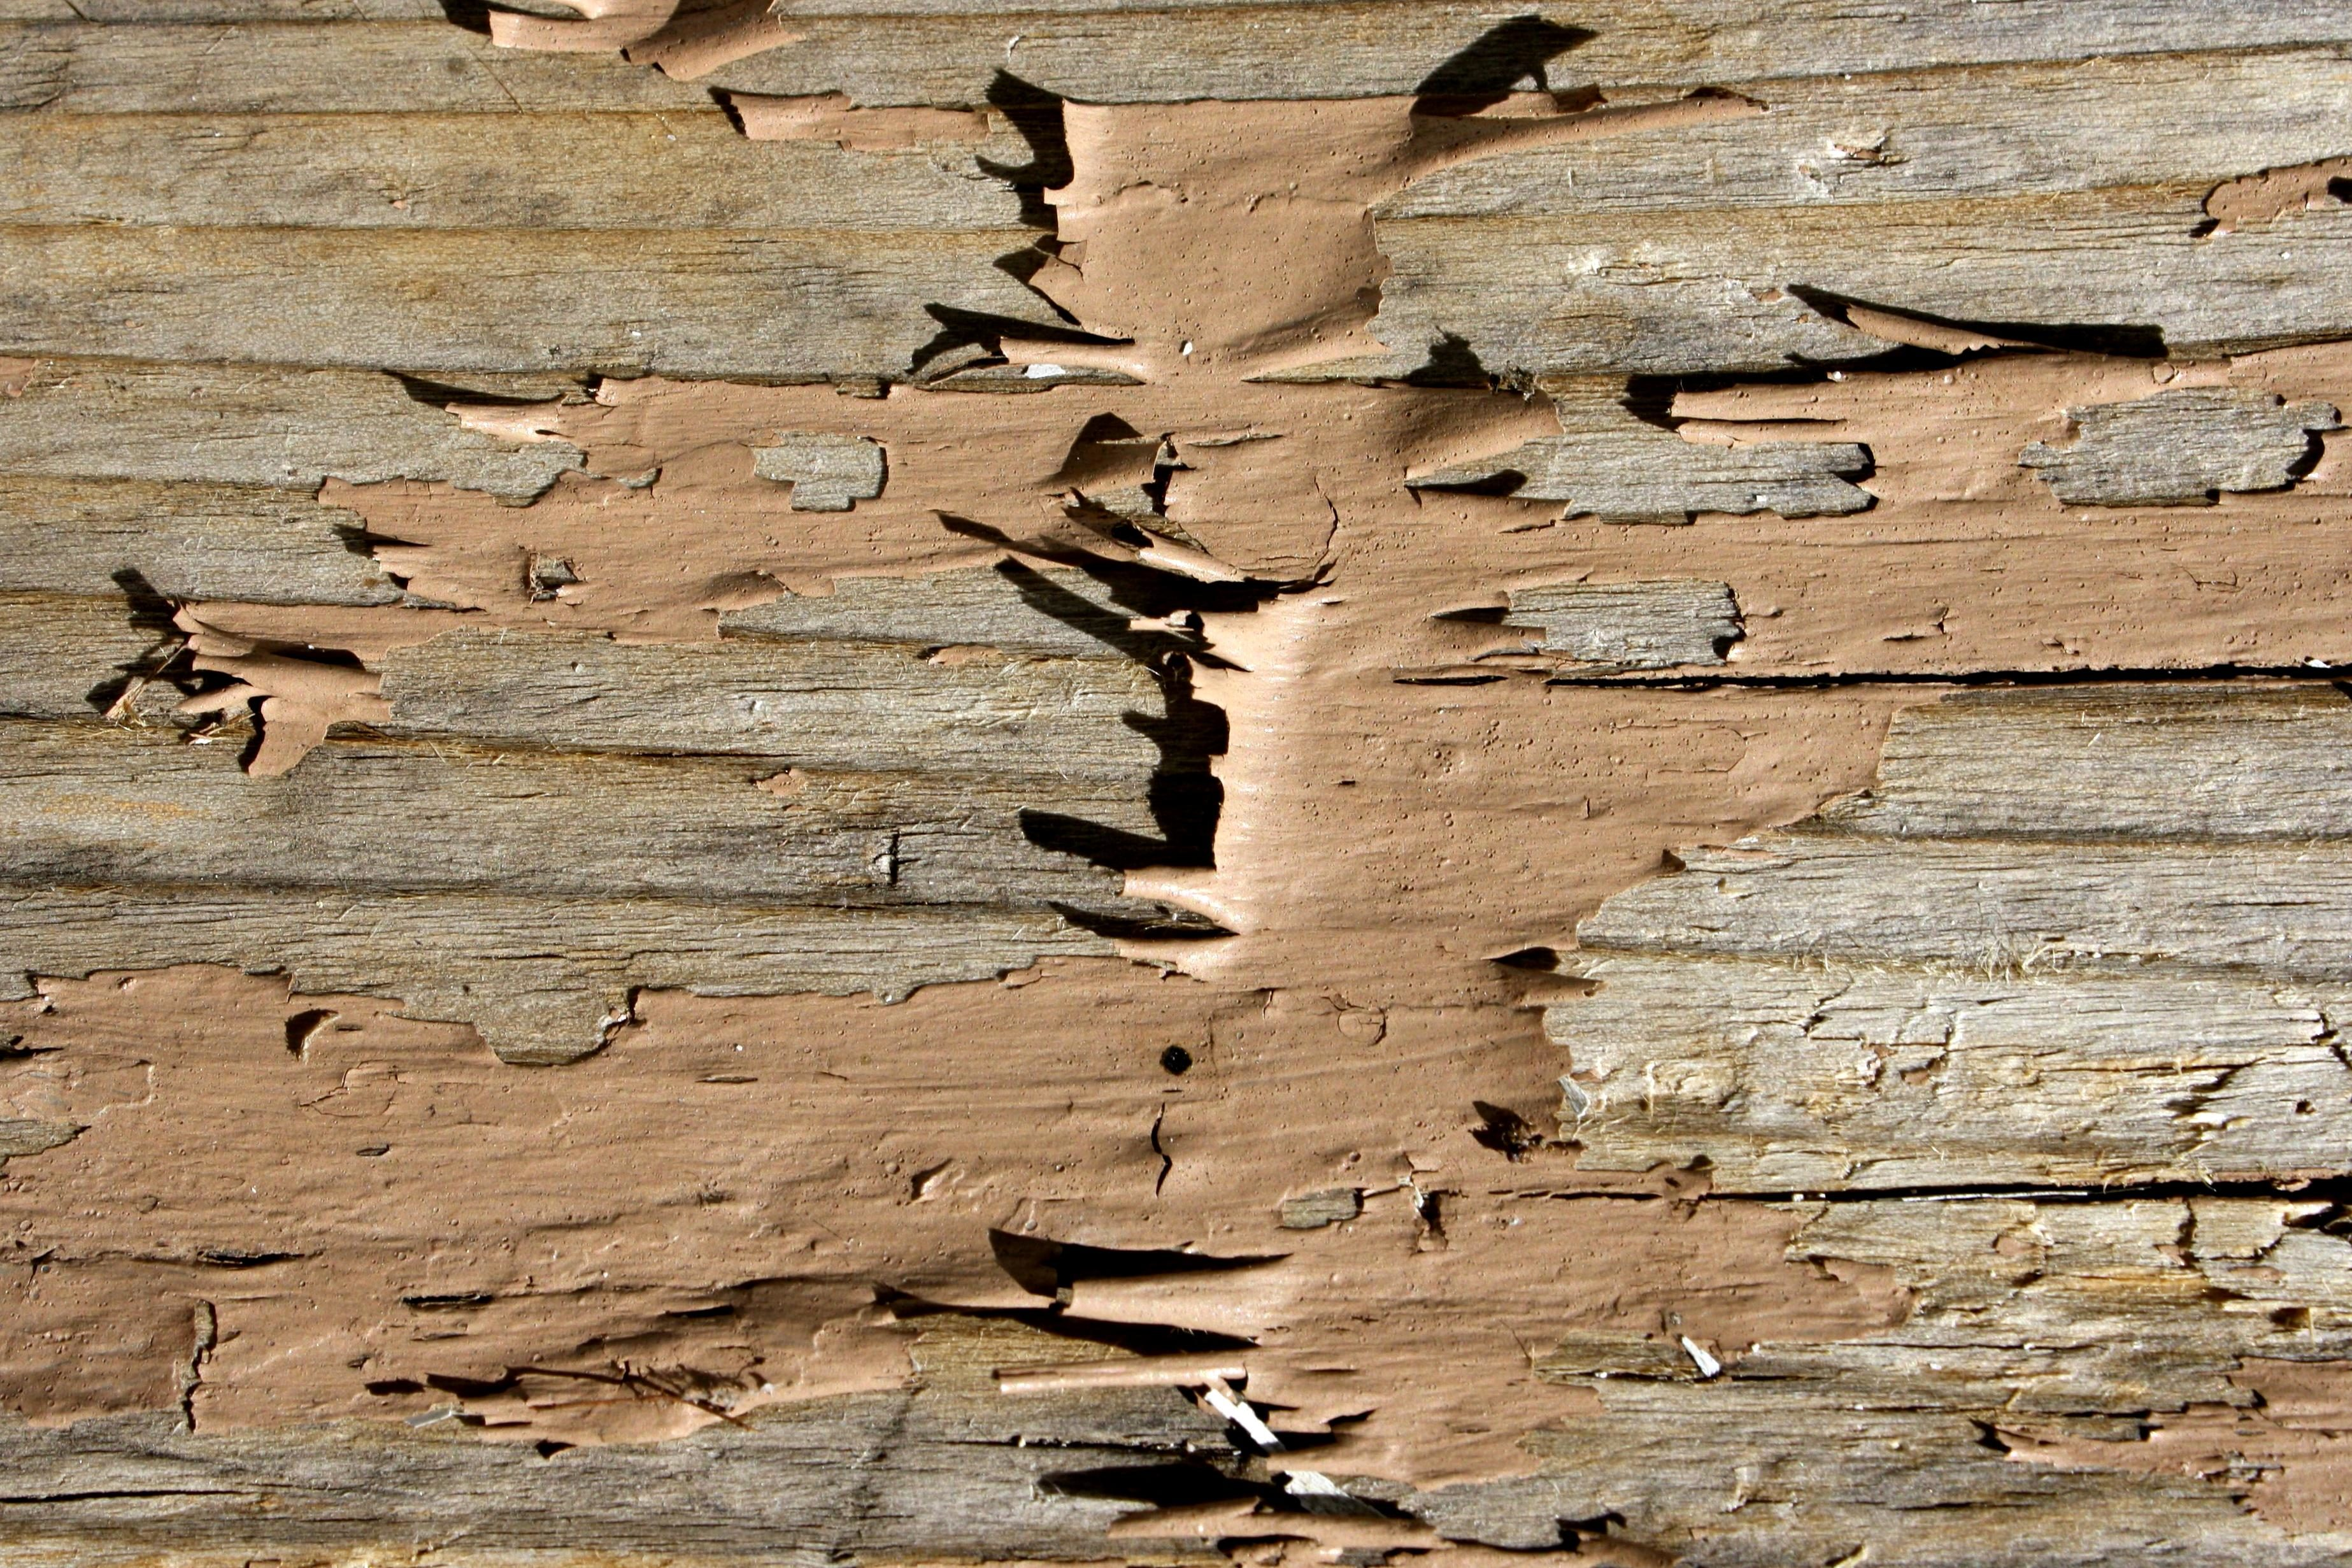 Free picture: brown color, old paint, wooden planks, texture